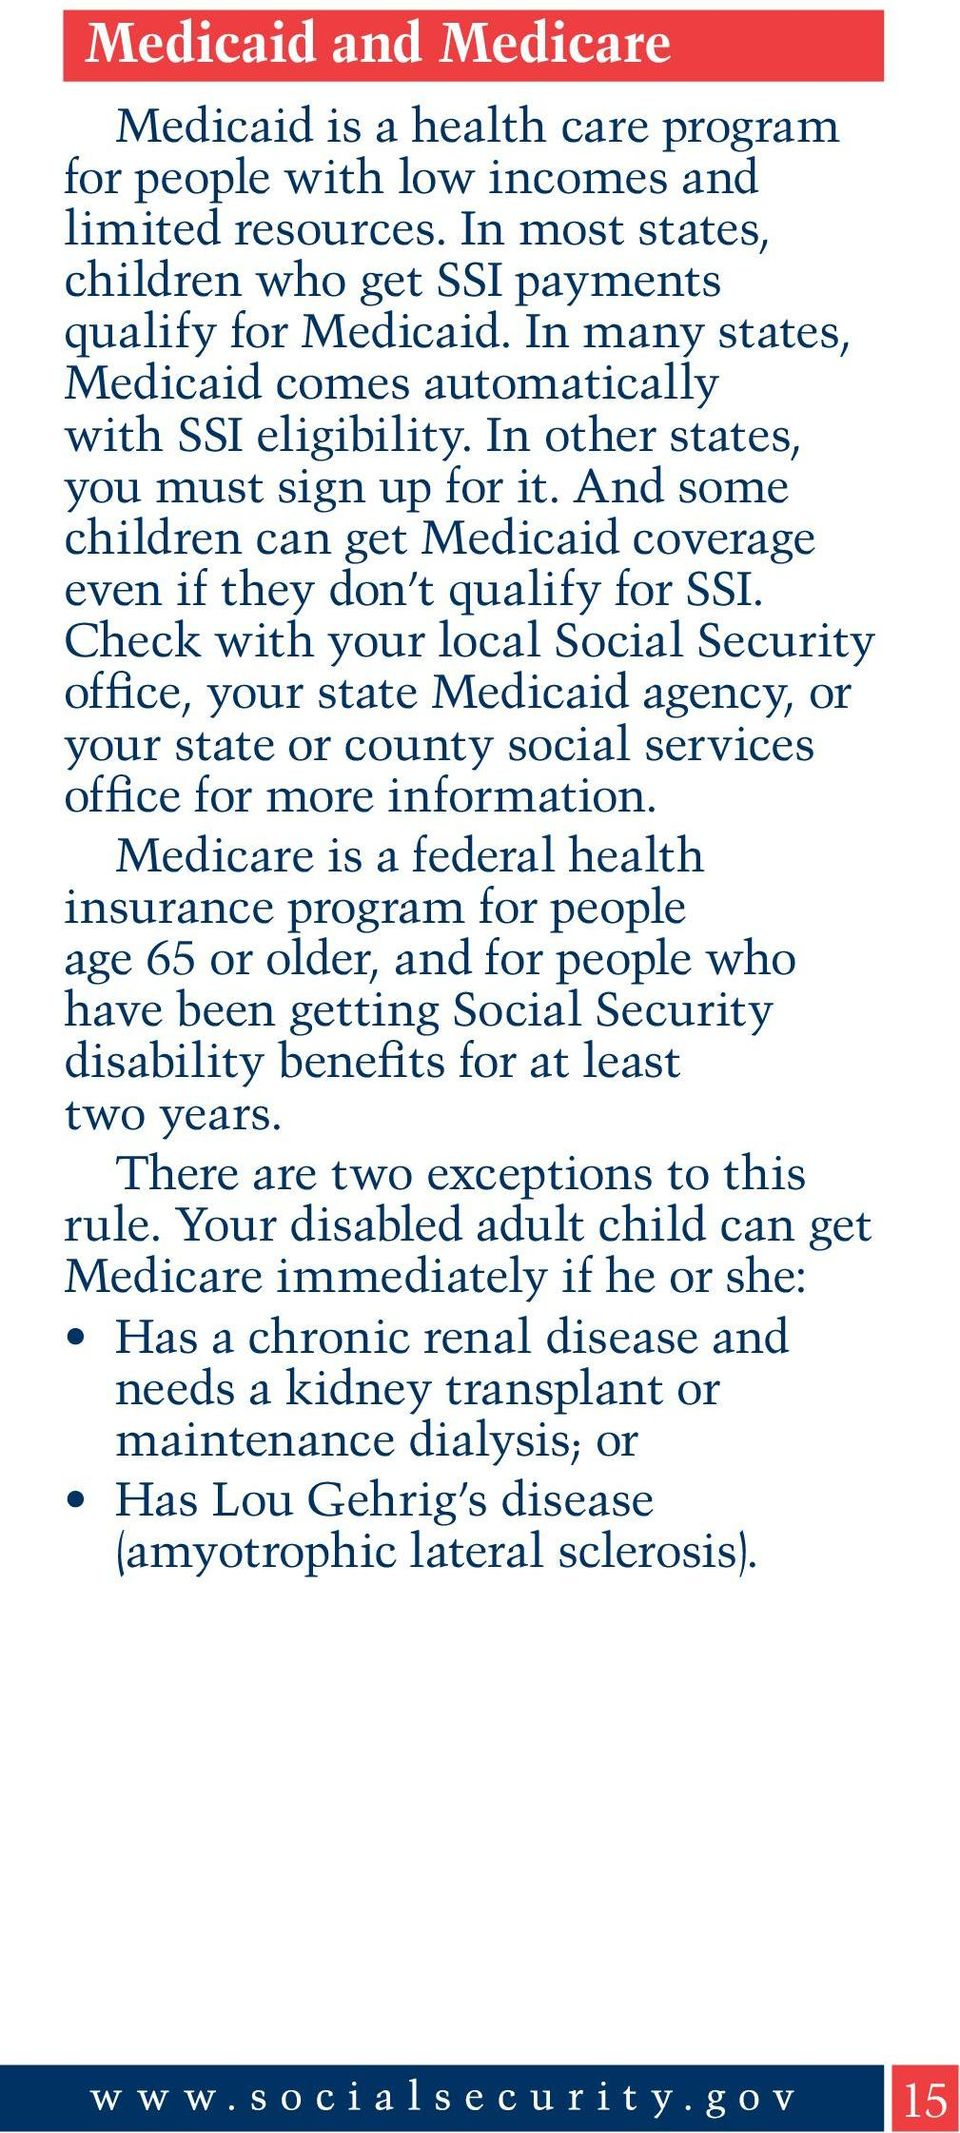 Check with your local Social Security office, your state Medicaid agency, or your state or county social services office for more information.